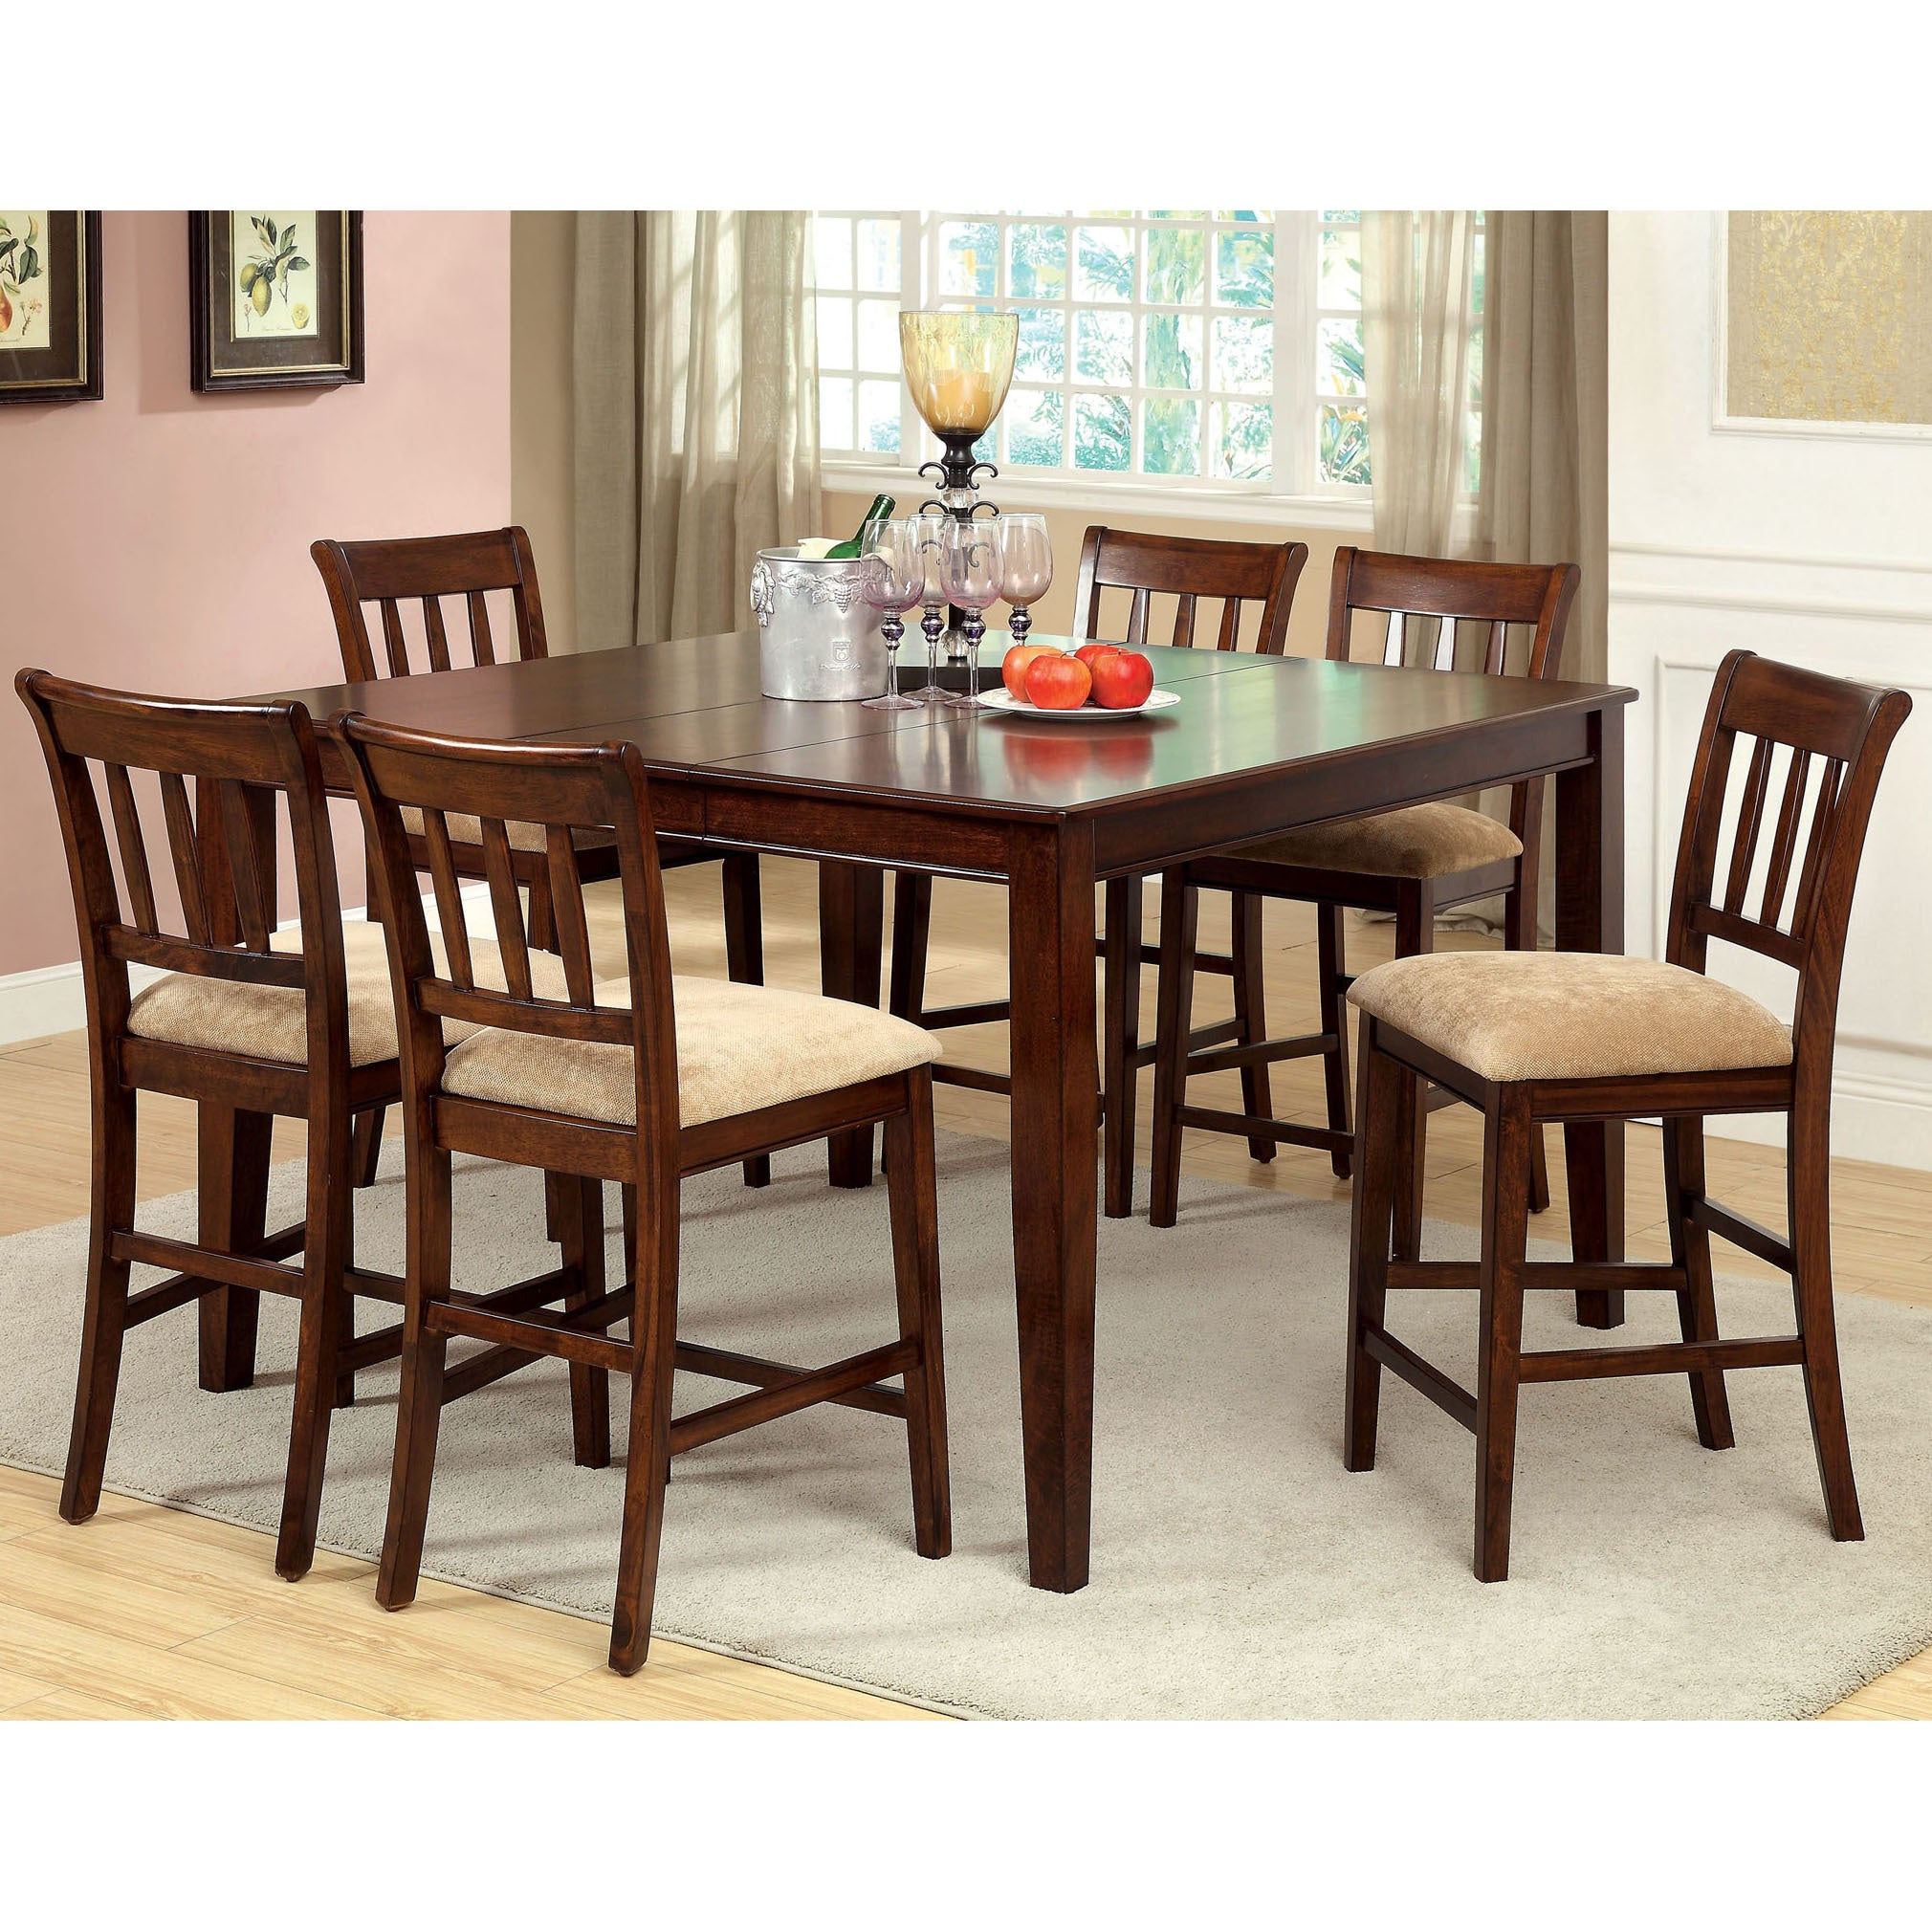 Shop Furniture of America Plainster Brown Cherry